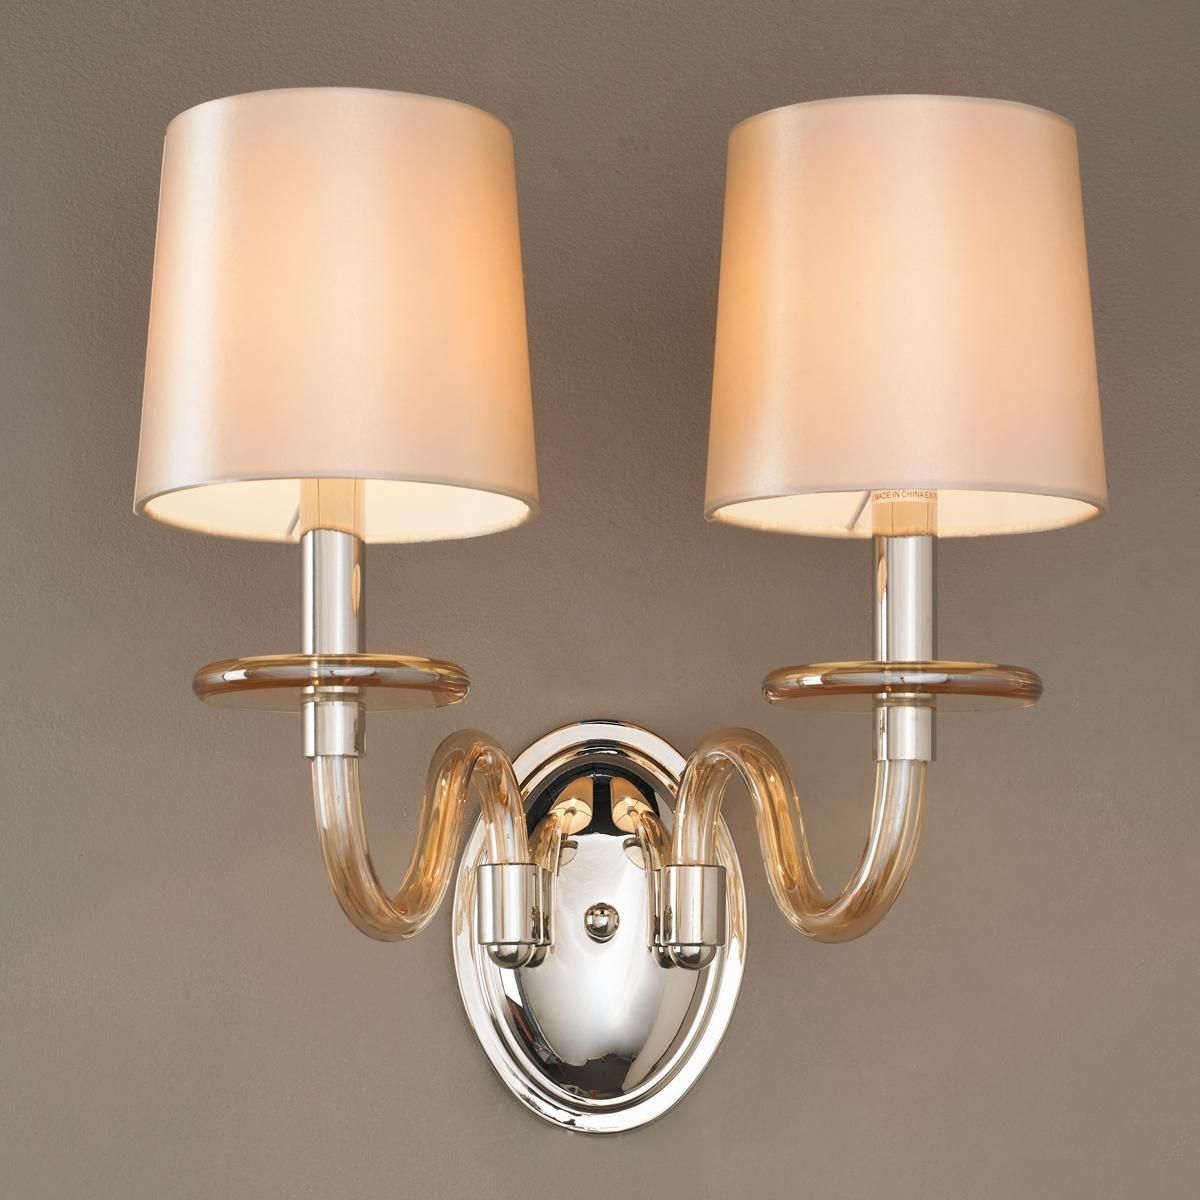 Modern Blown Glass Double Wall Sconce Double Wall Sconce Wall Sconce Hallway Sconces Blown glass wall sconces